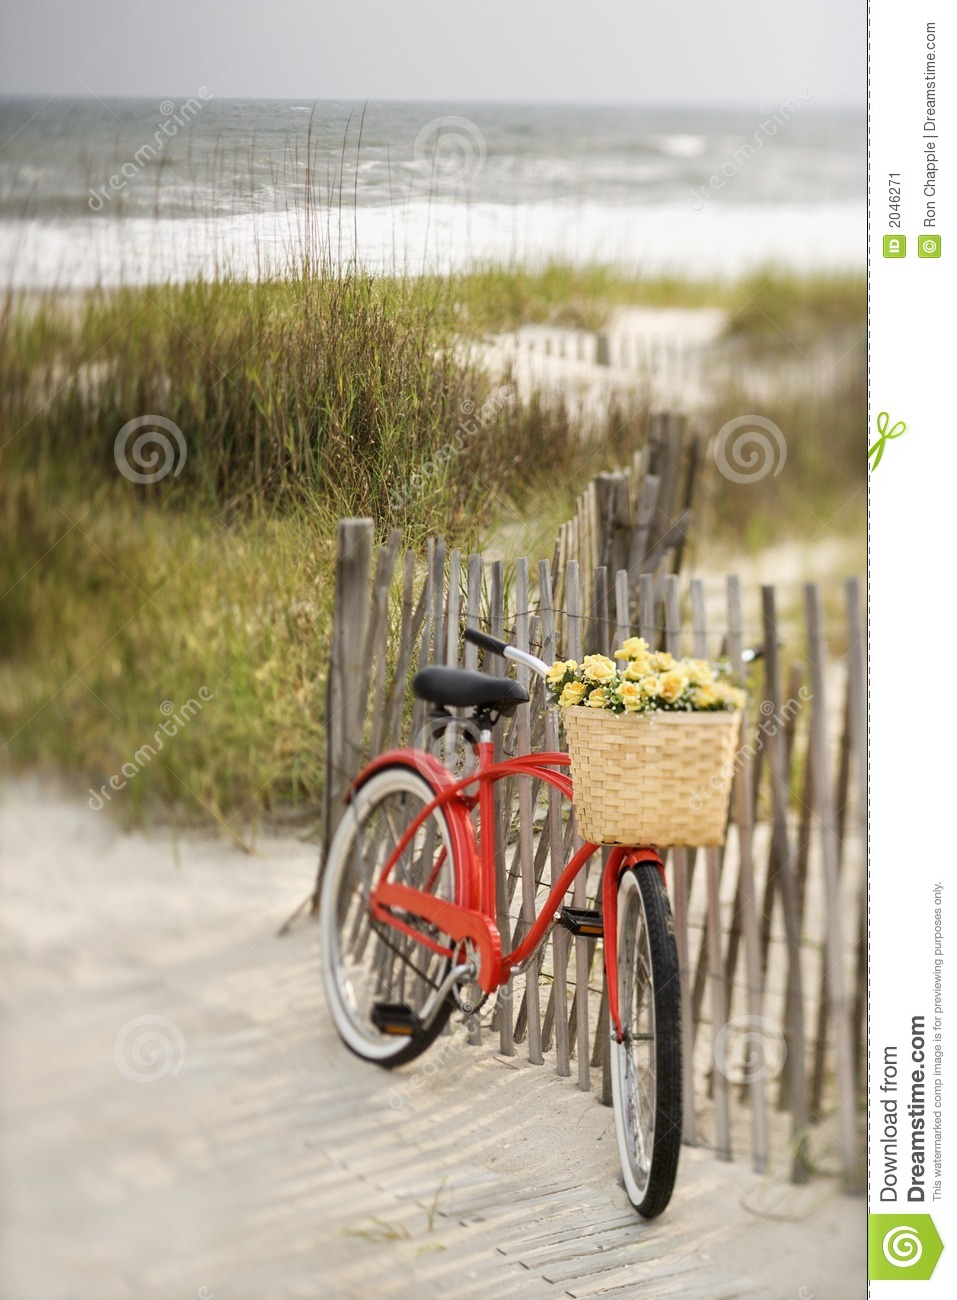 Bike Leaning Against A Wall Stock Images, Royalty-Free Images ...